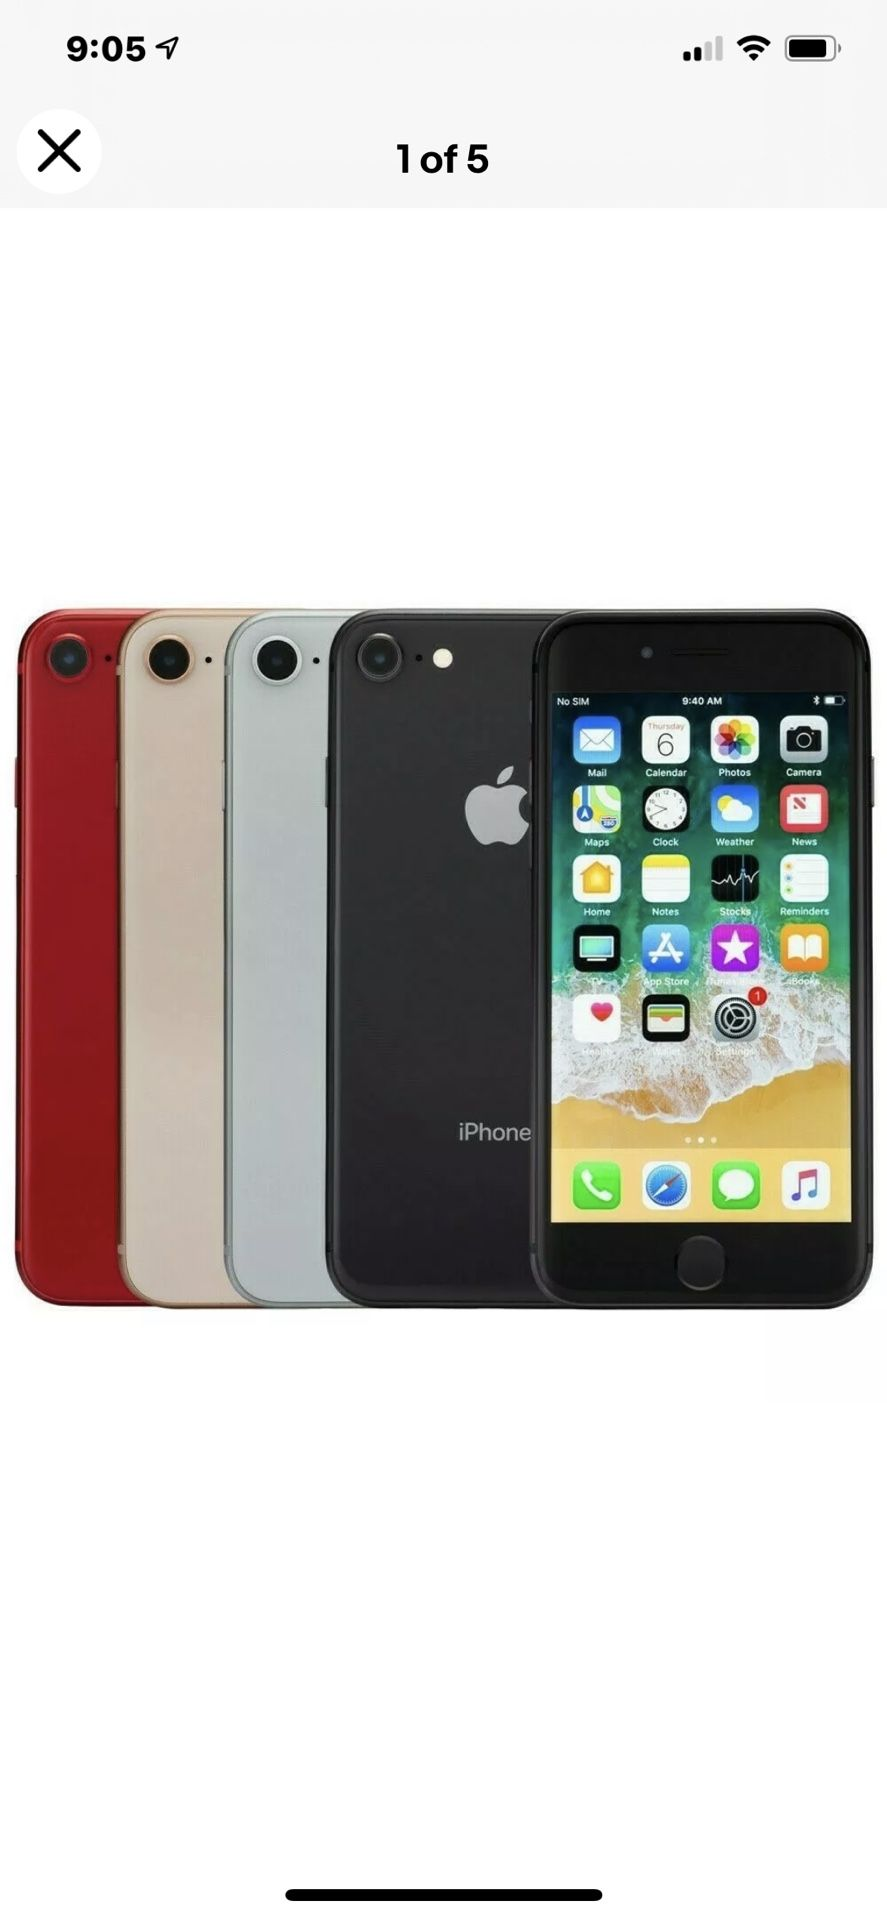 Apple iPhone 8 64GB GSM Unlocked AT&T T-Mobile Very Good Condition - Like New $300